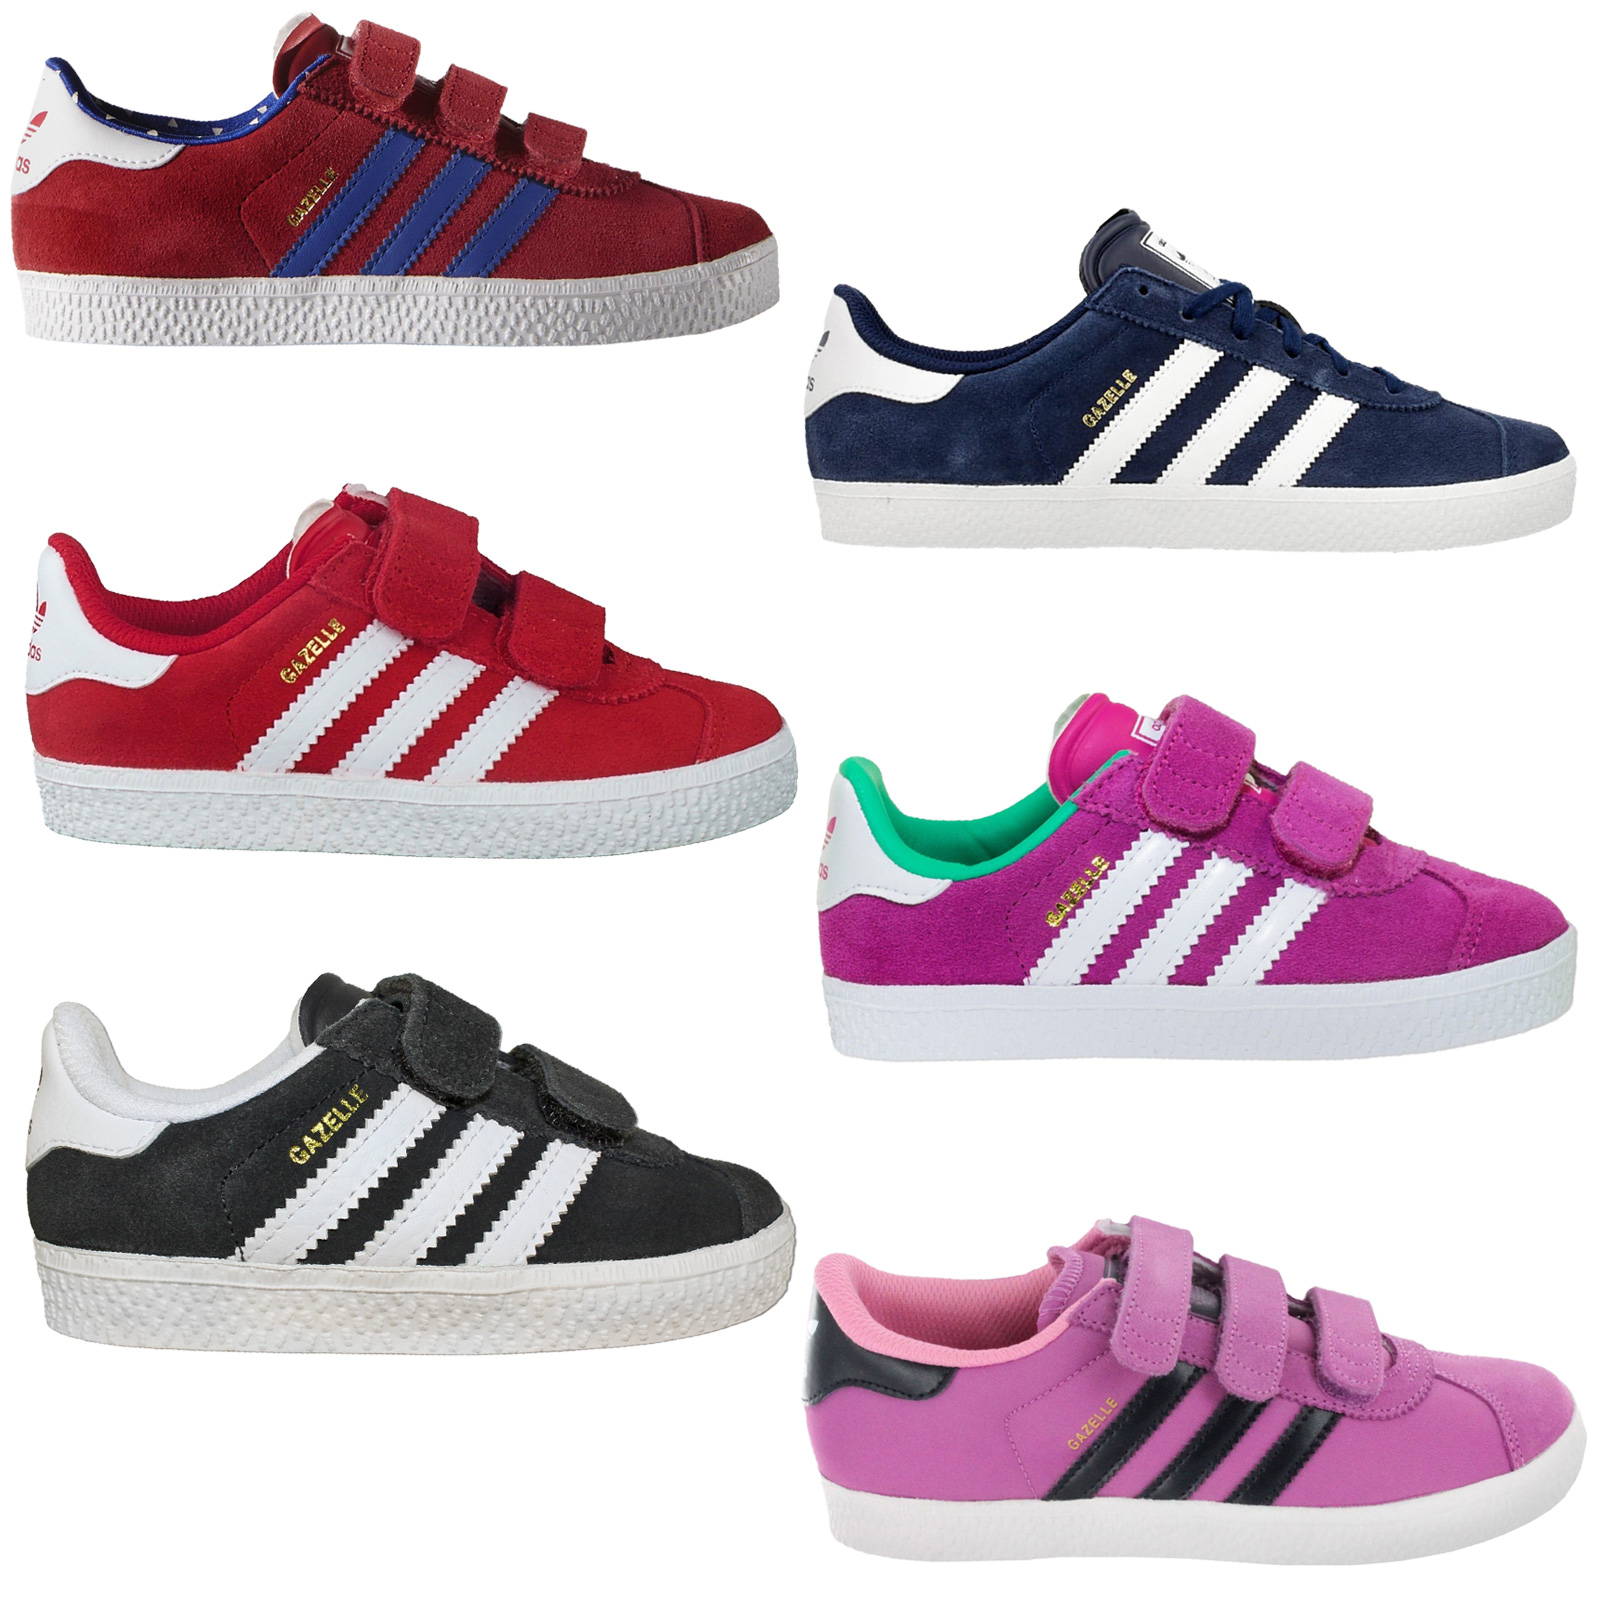 Adidas Kinder Originals Schuhe Kinder Outlet | Adidas